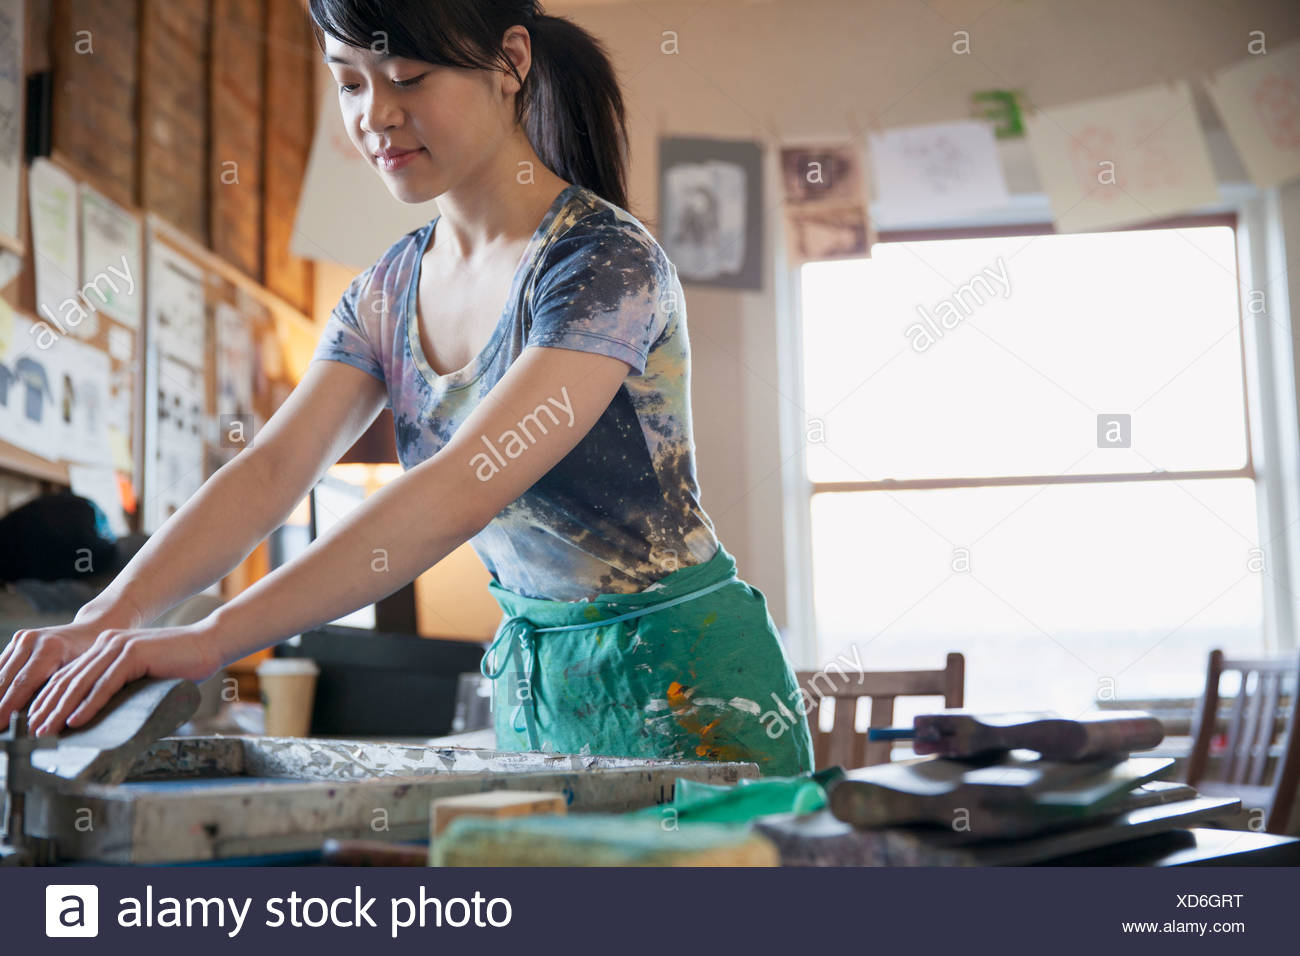 Female design professional working on silk screen at workshop - Stock Image